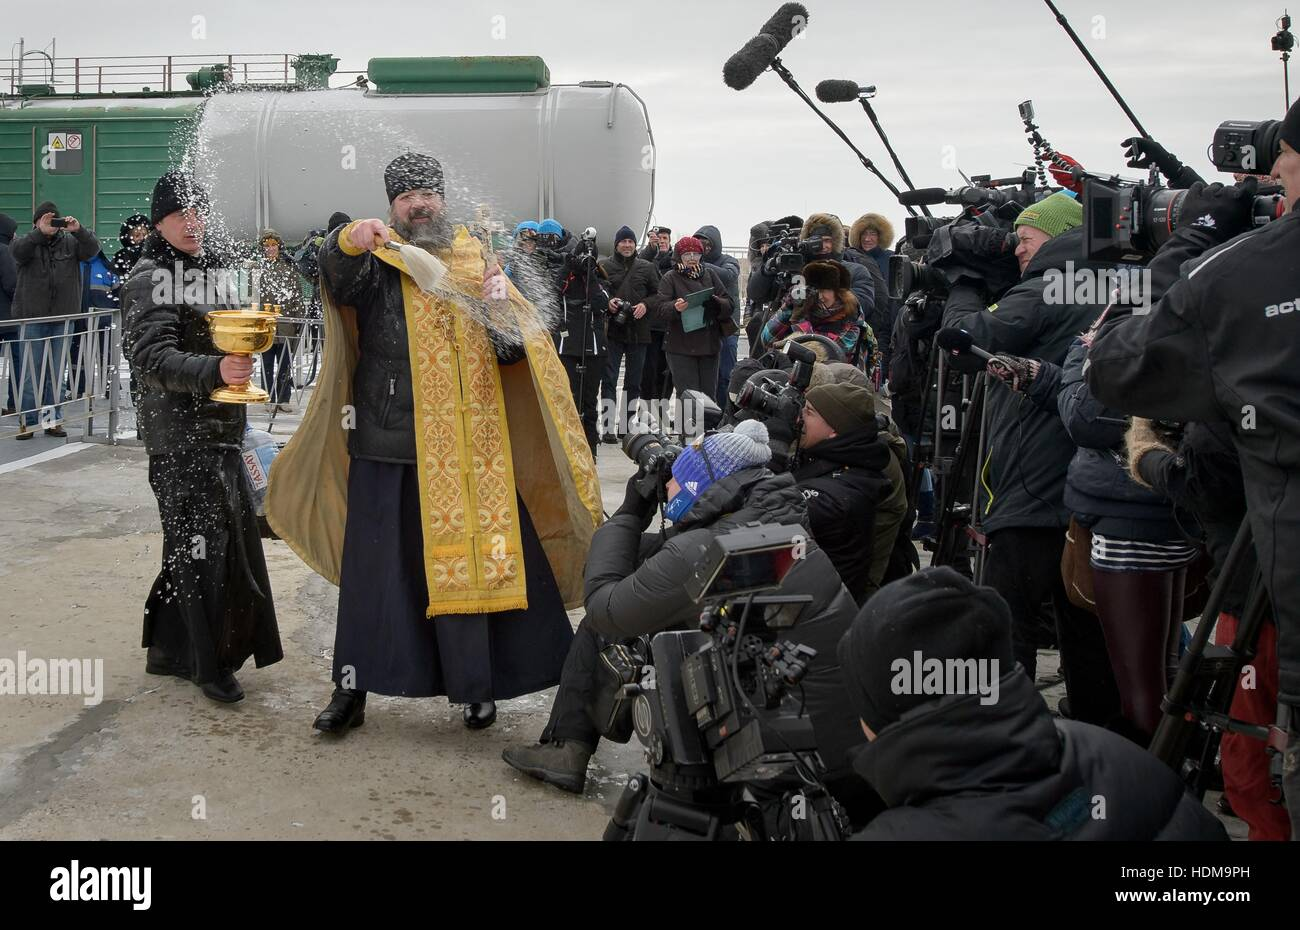 A Russian Orthodox Priest blesses members of the media after blessing the Soyuz MS-03 spacecraft rocket in preparation Stock Photo